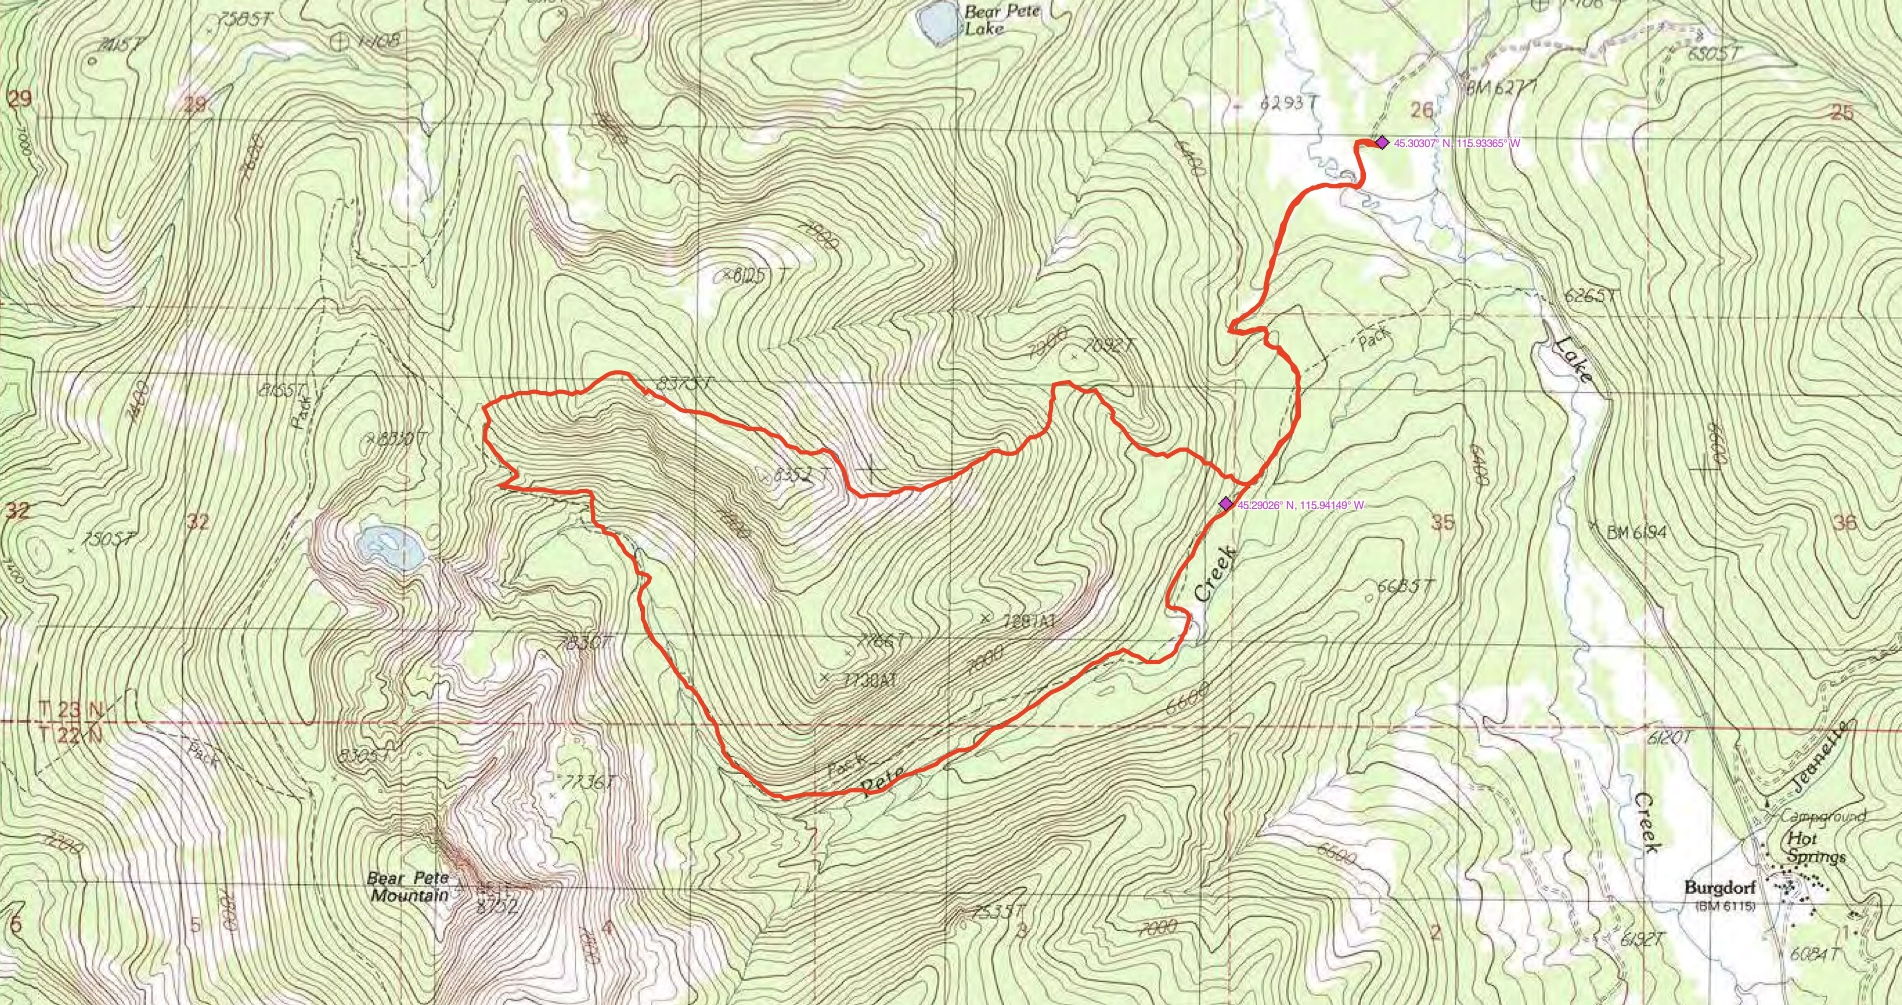 John Platt's GPS track. His route covered 7.8 miles with 2,376 feet of elevation gain.